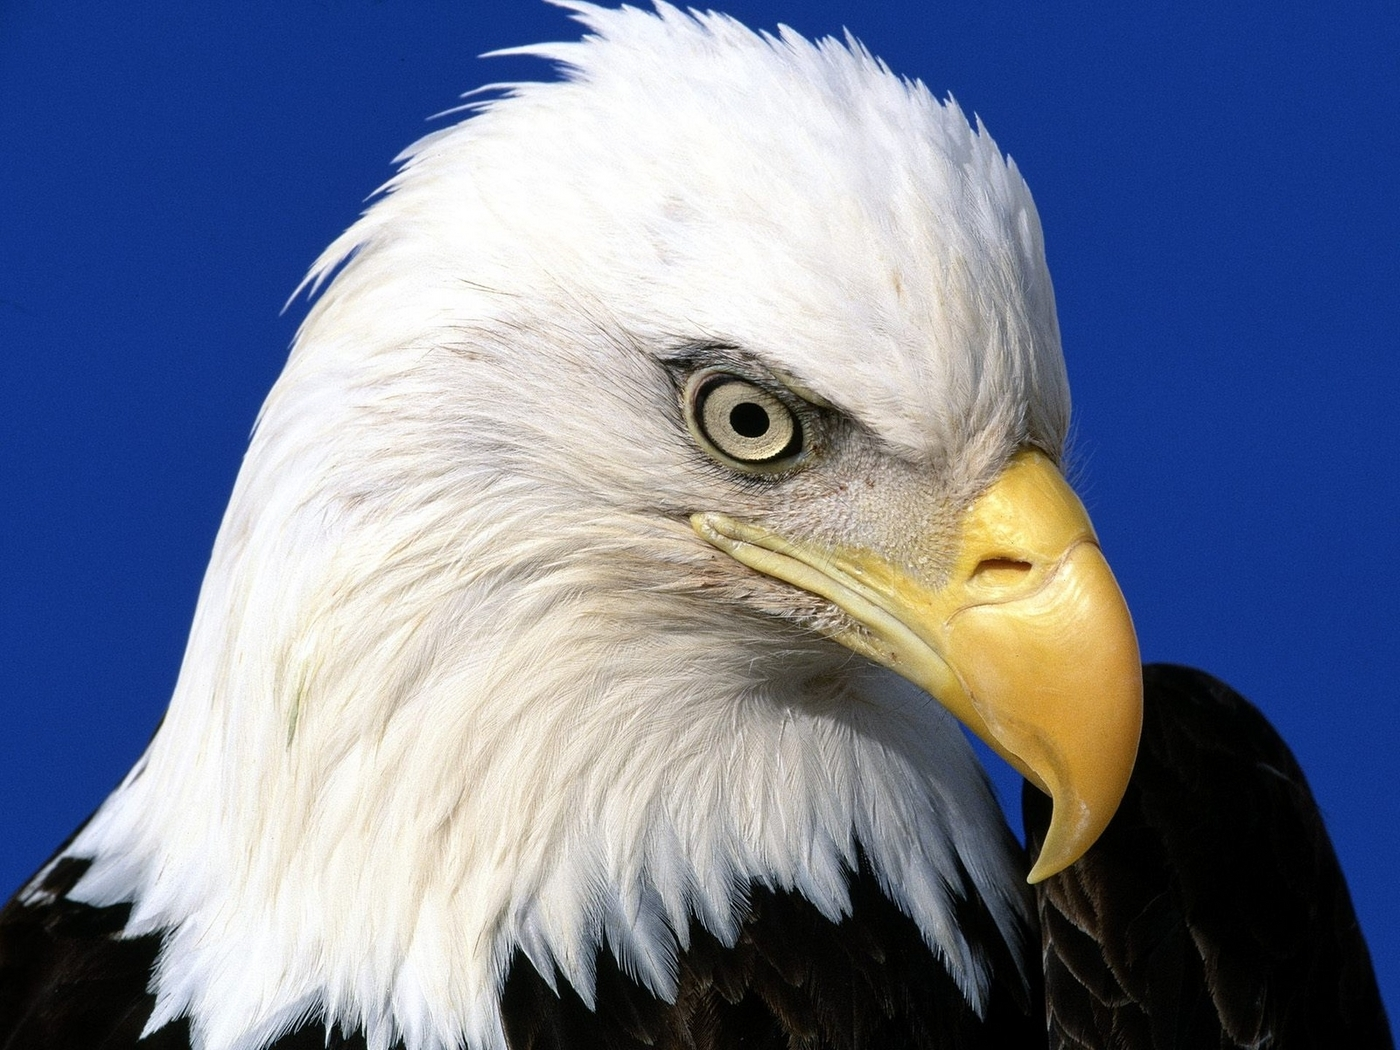 43580 download wallpaper Animals, Birds, Eagles screensavers and pictures for free